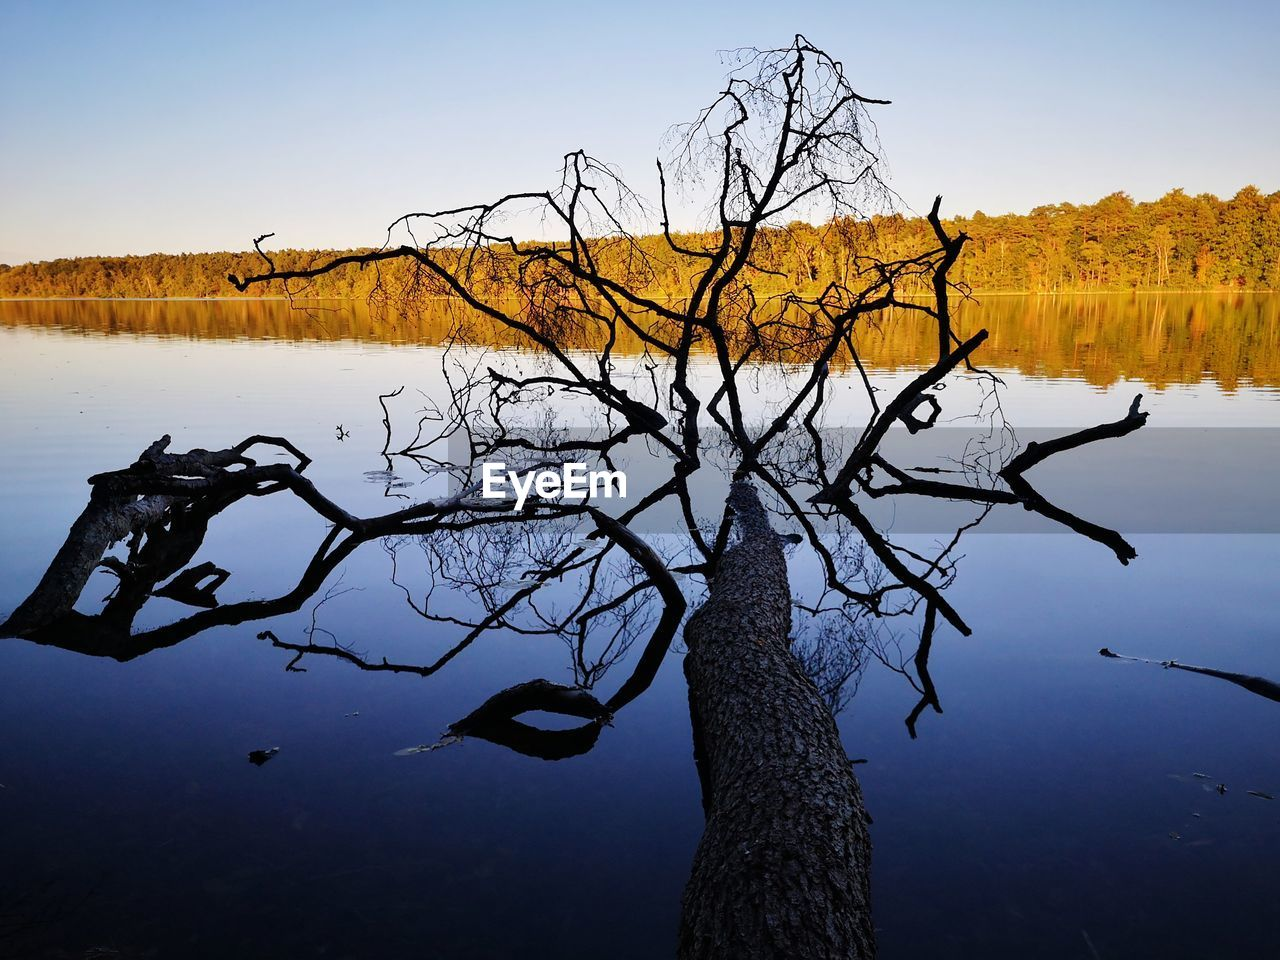 tree, tranquility, plant, sky, water, bare tree, tranquil scene, beauty in nature, lake, branch, nature, scenics - nature, no people, tree trunk, trunk, reflection, day, non-urban scene, outdoors, dead plant